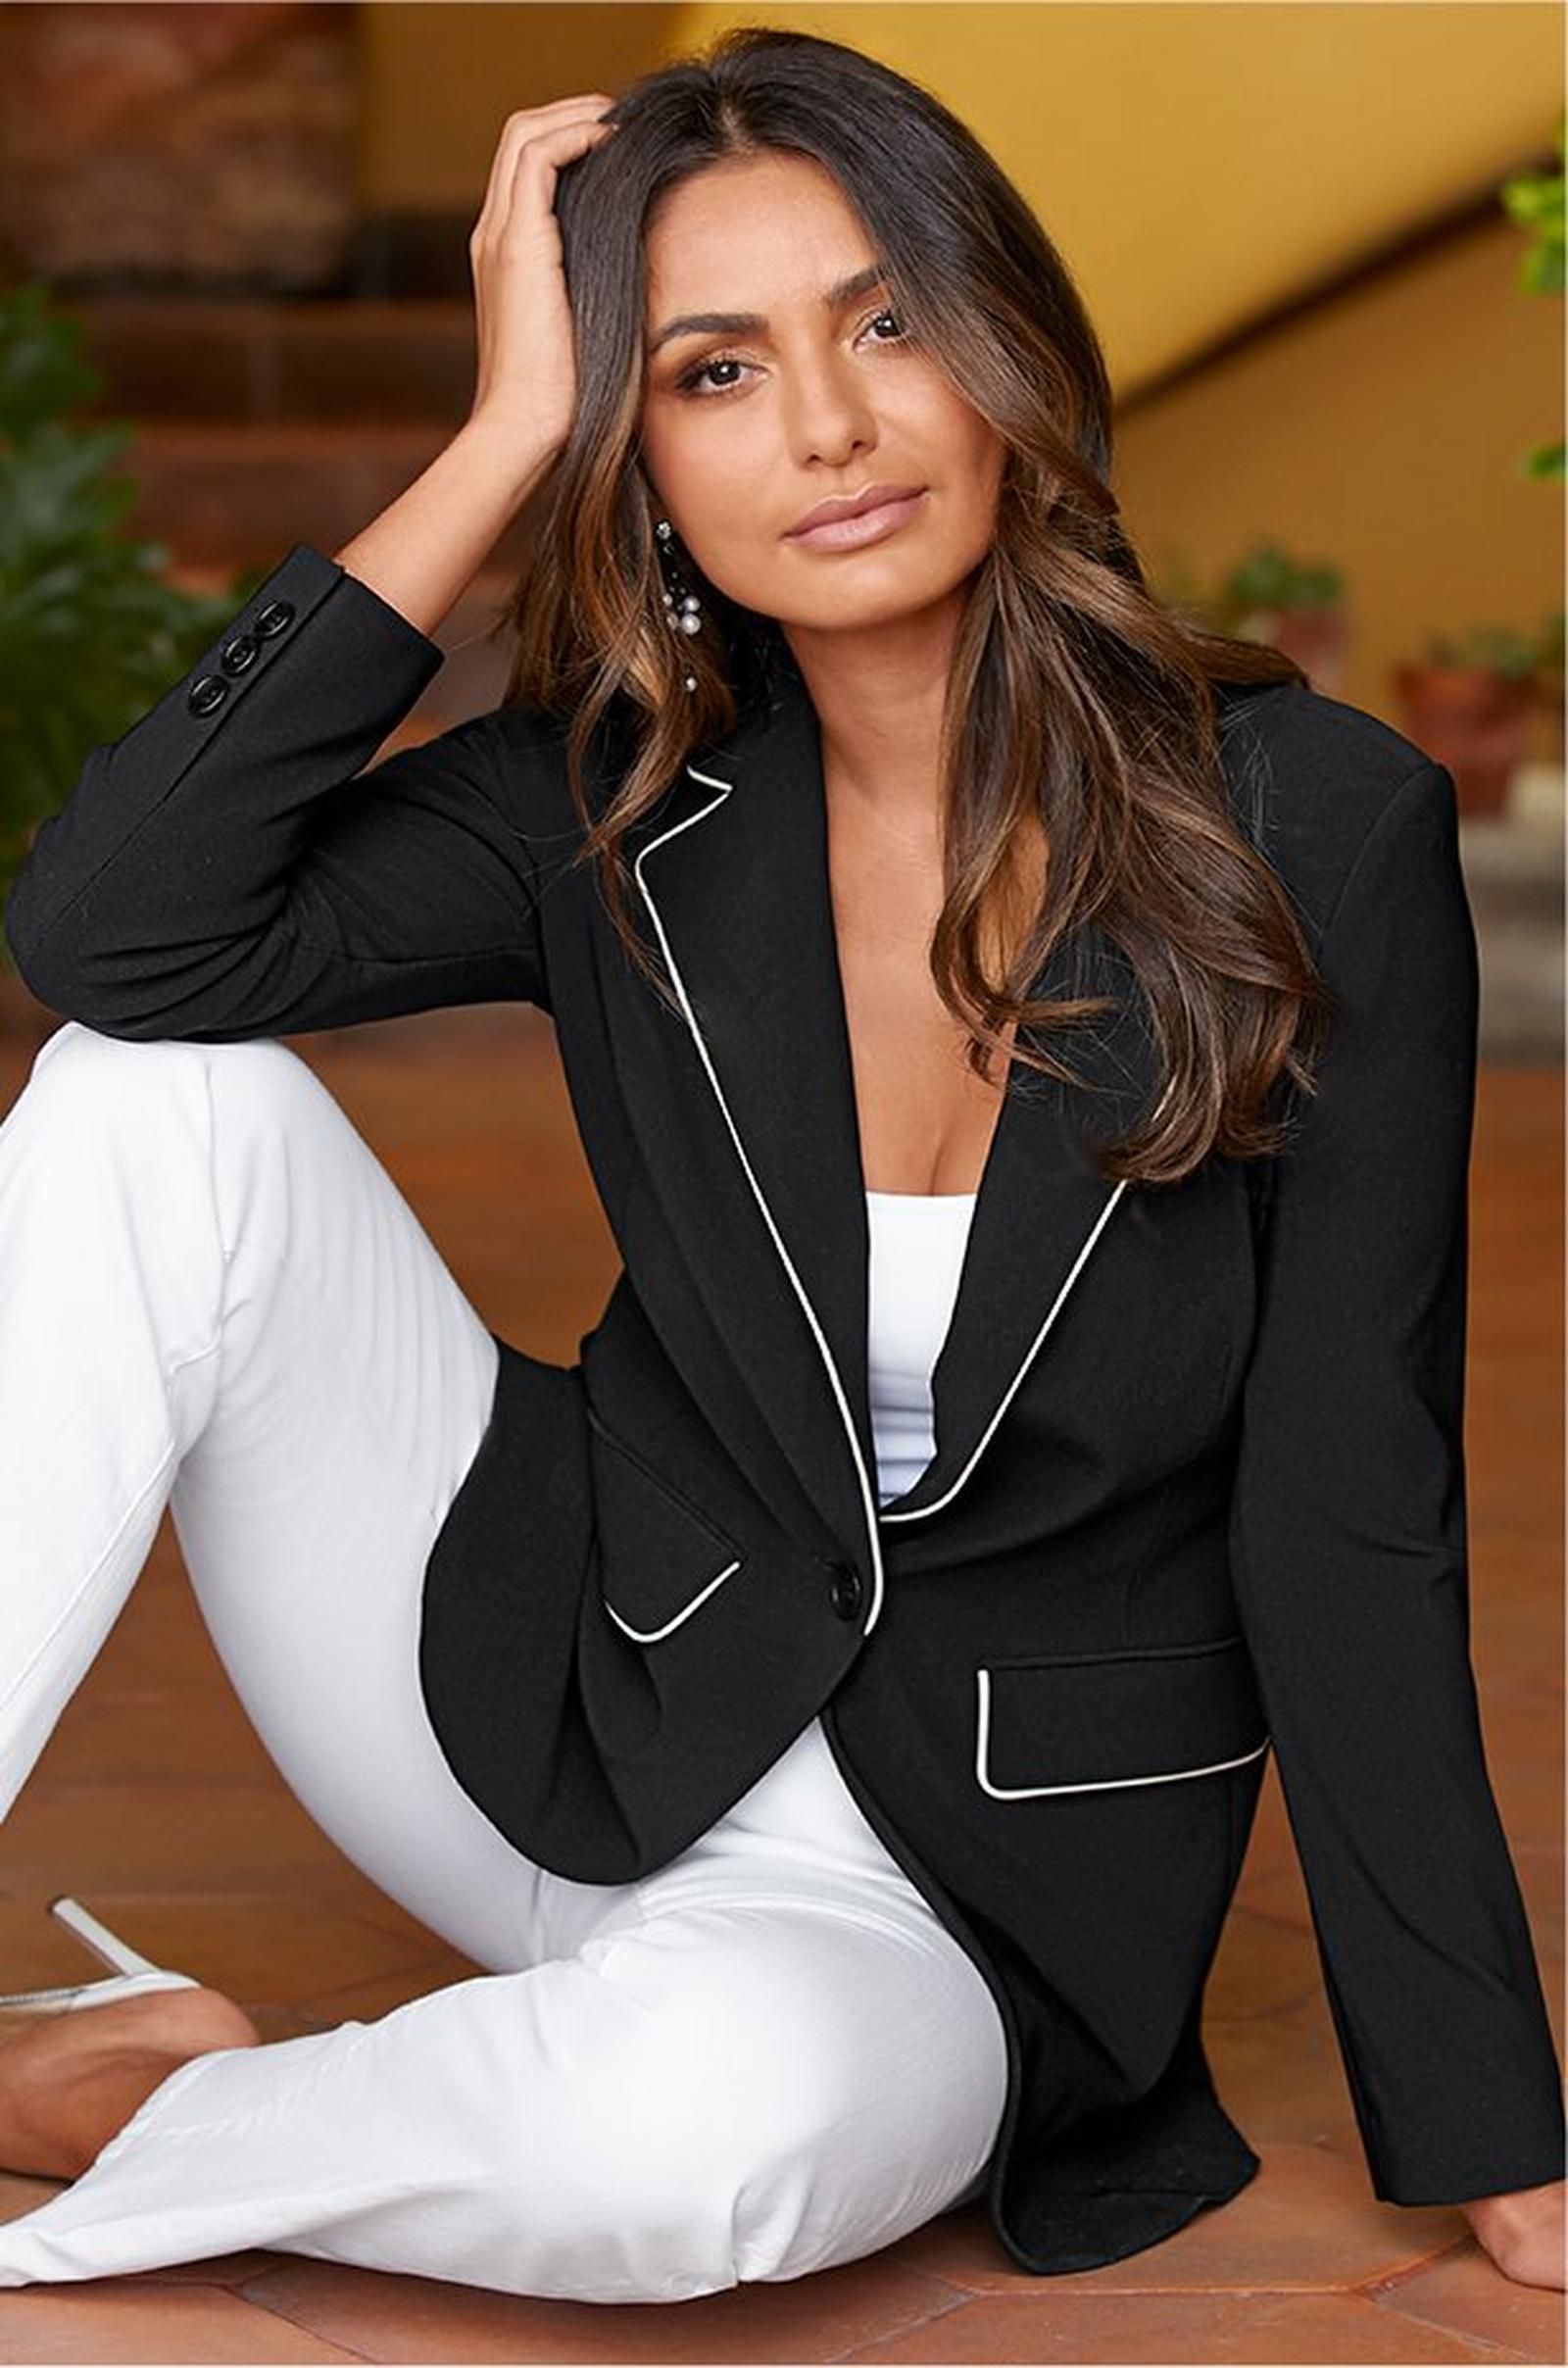 model wearing white pants, a white tank top, and a black blazer with white piping.